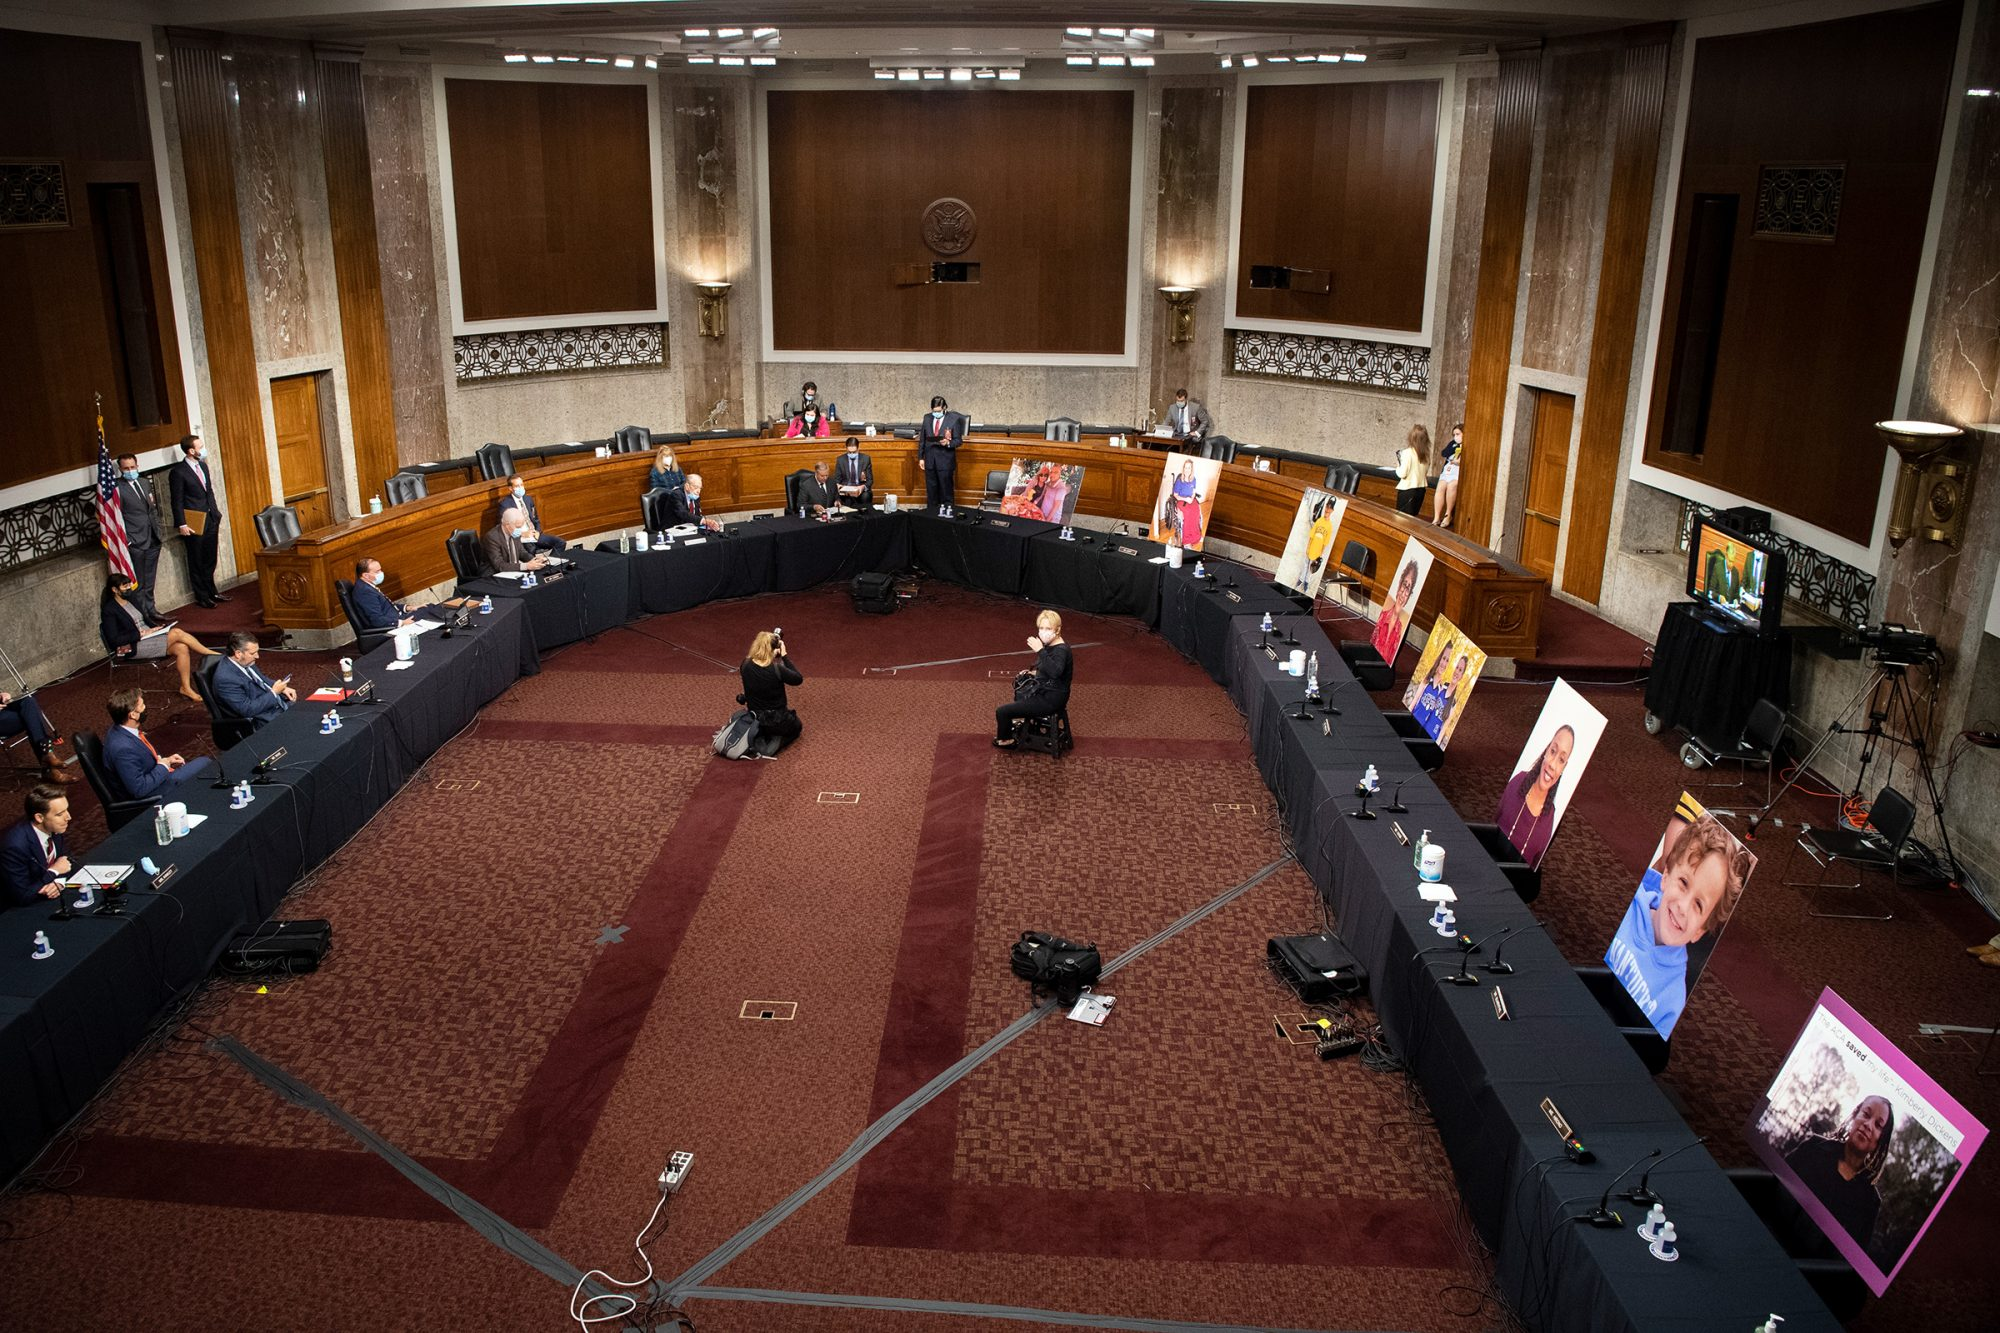 Democratic Senators on the Senate Judiciary Committee boycott the committee vote on Amy Coney Barrett to serve as an associate justice on the Supreme Court of the United States during a Senate Judiciary Committee Executive Business meeting in Washington on Thursday, Oct. 22, 2020